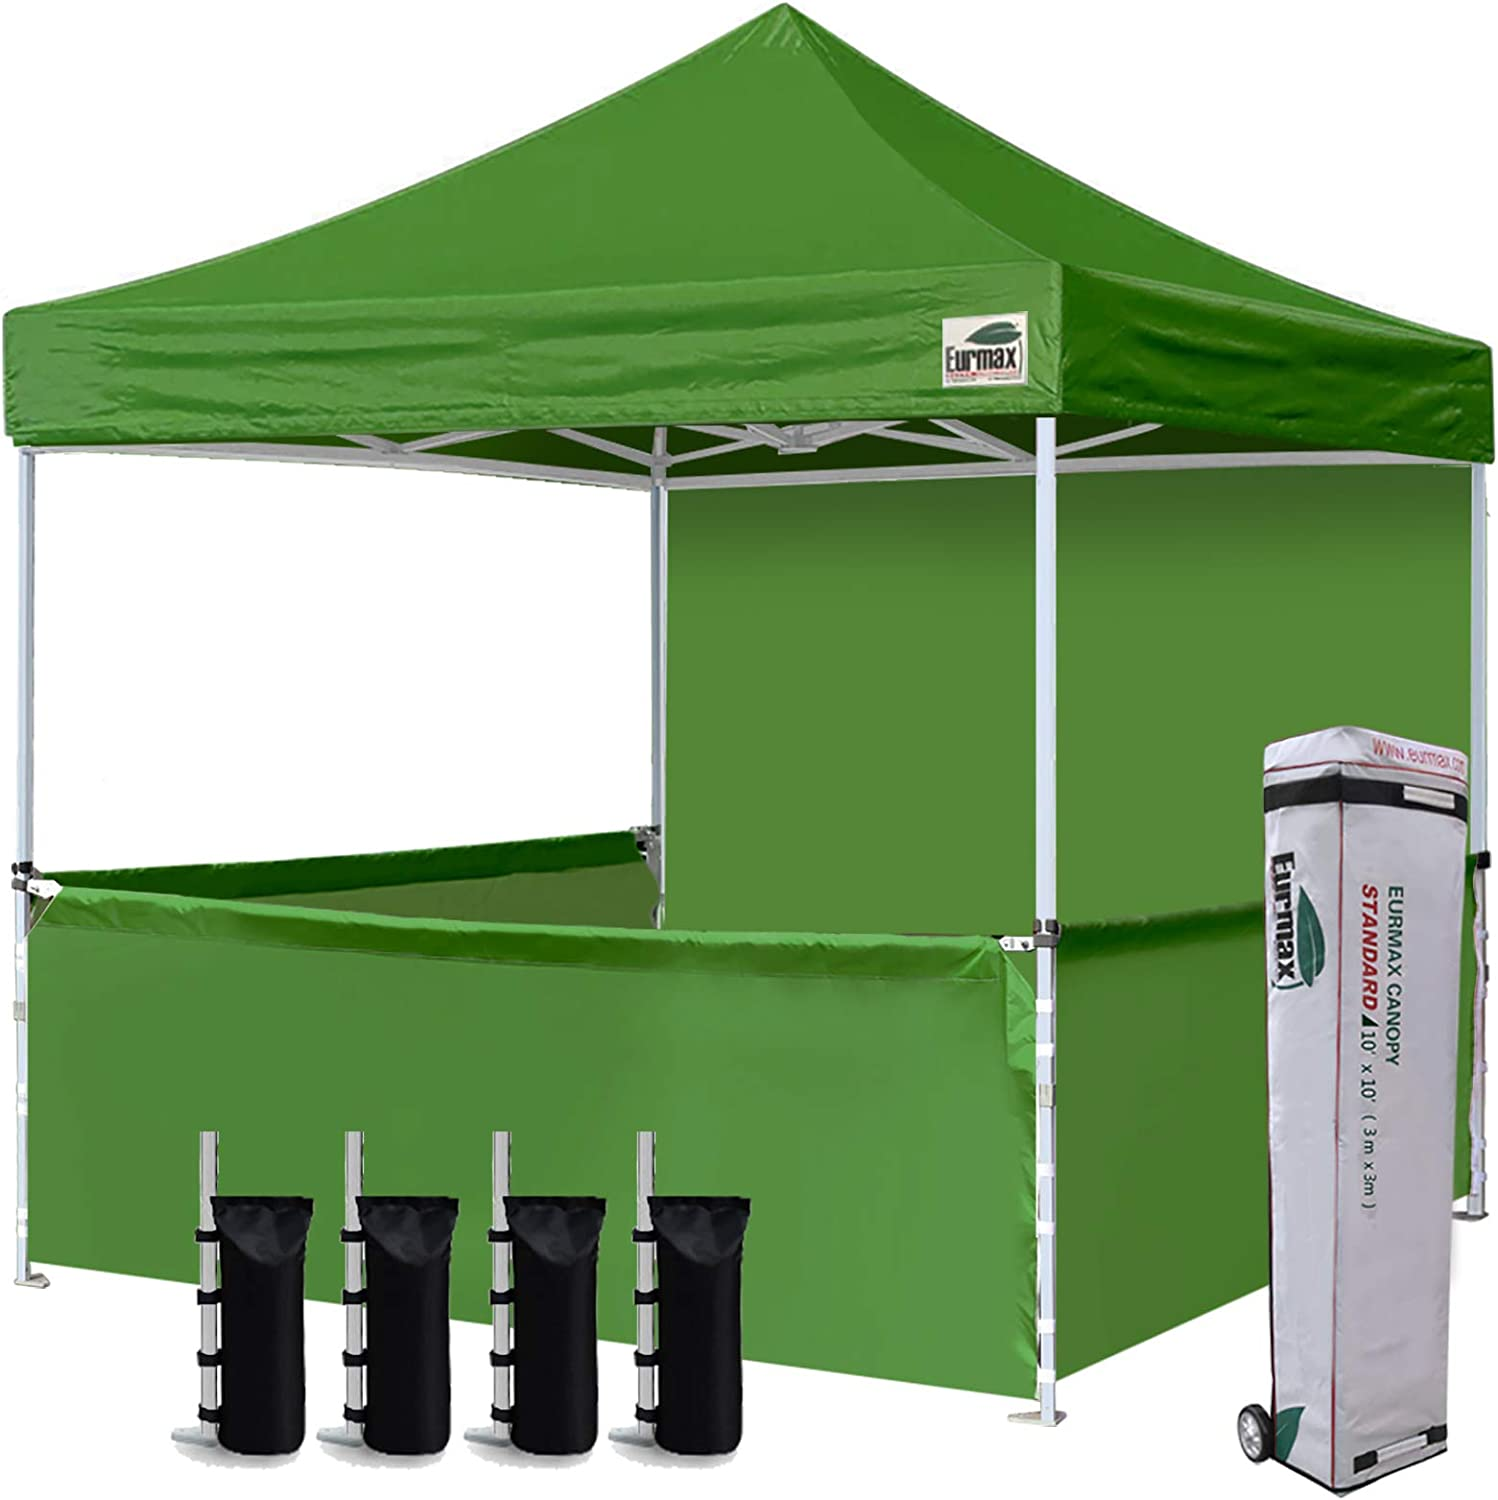 Eurmax 10'x10' Ez Pop-up Booth Canopy Tent Commercial Instant Canopies with 1 Full Sidewall & 3 Half Walls and Roller Bag, with 4 SandBags + 3 Cross-Bar